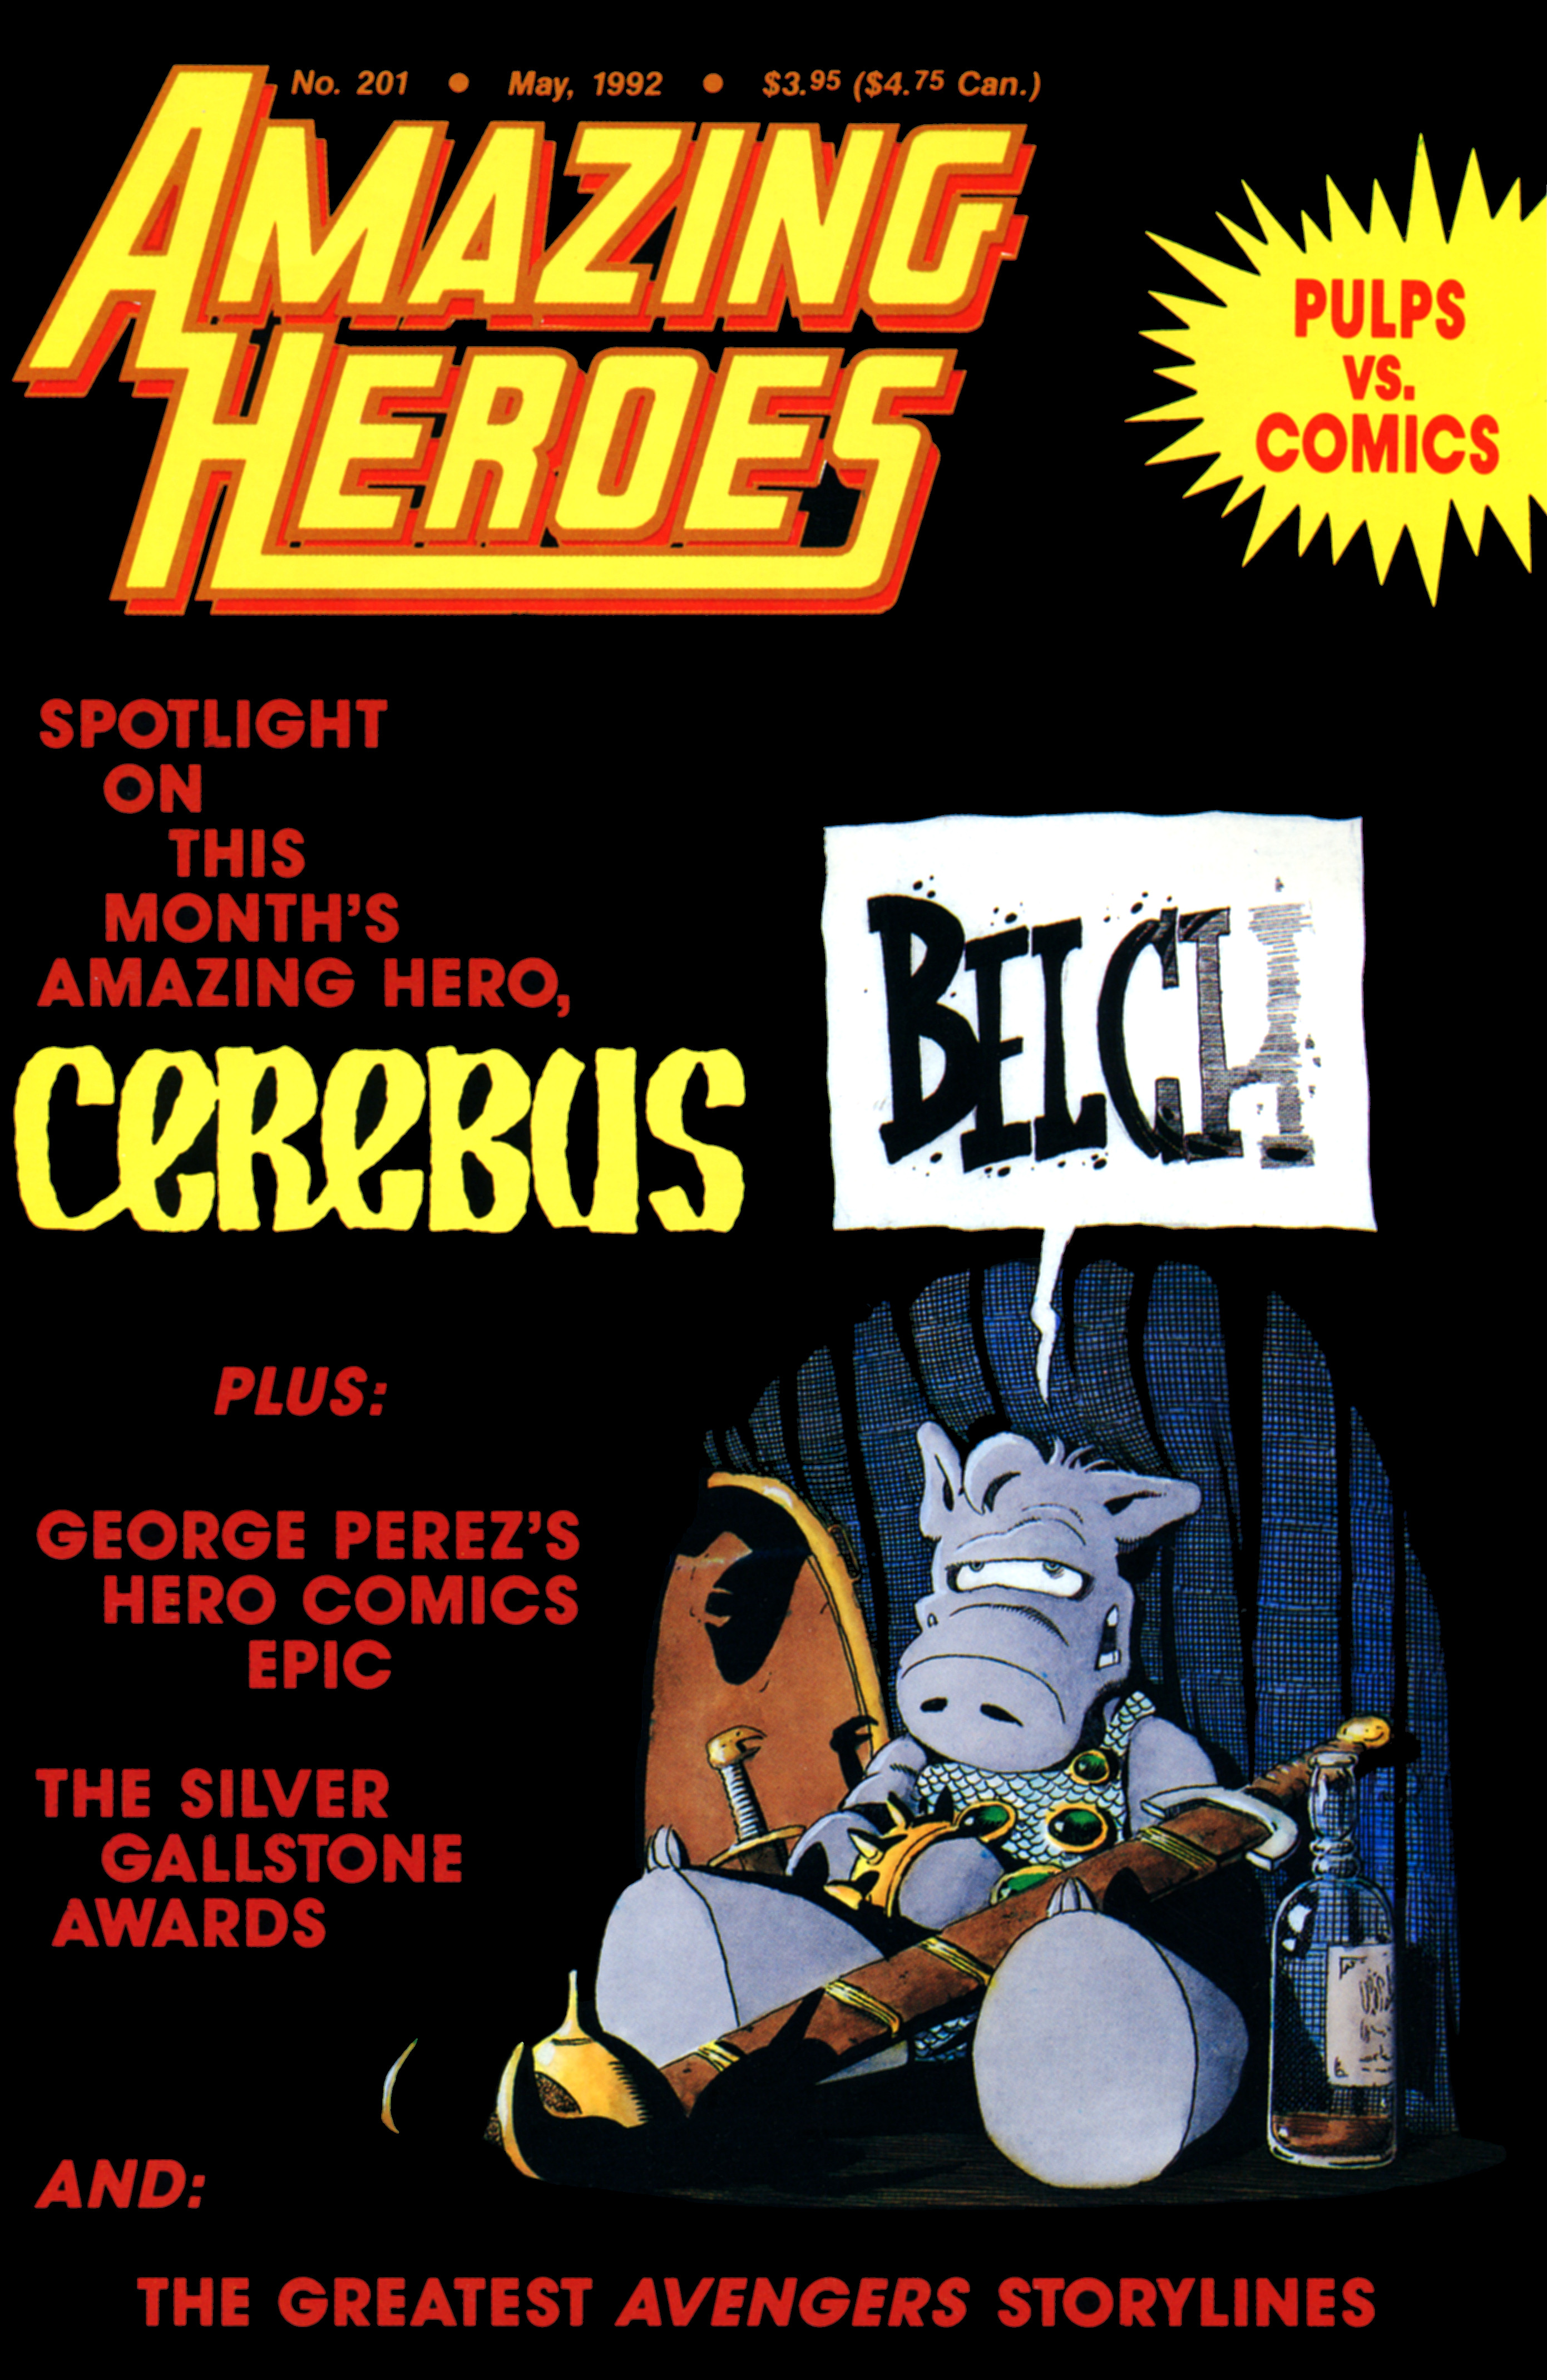 Read online Amazing Heroes comic -  Issue #201 - 1